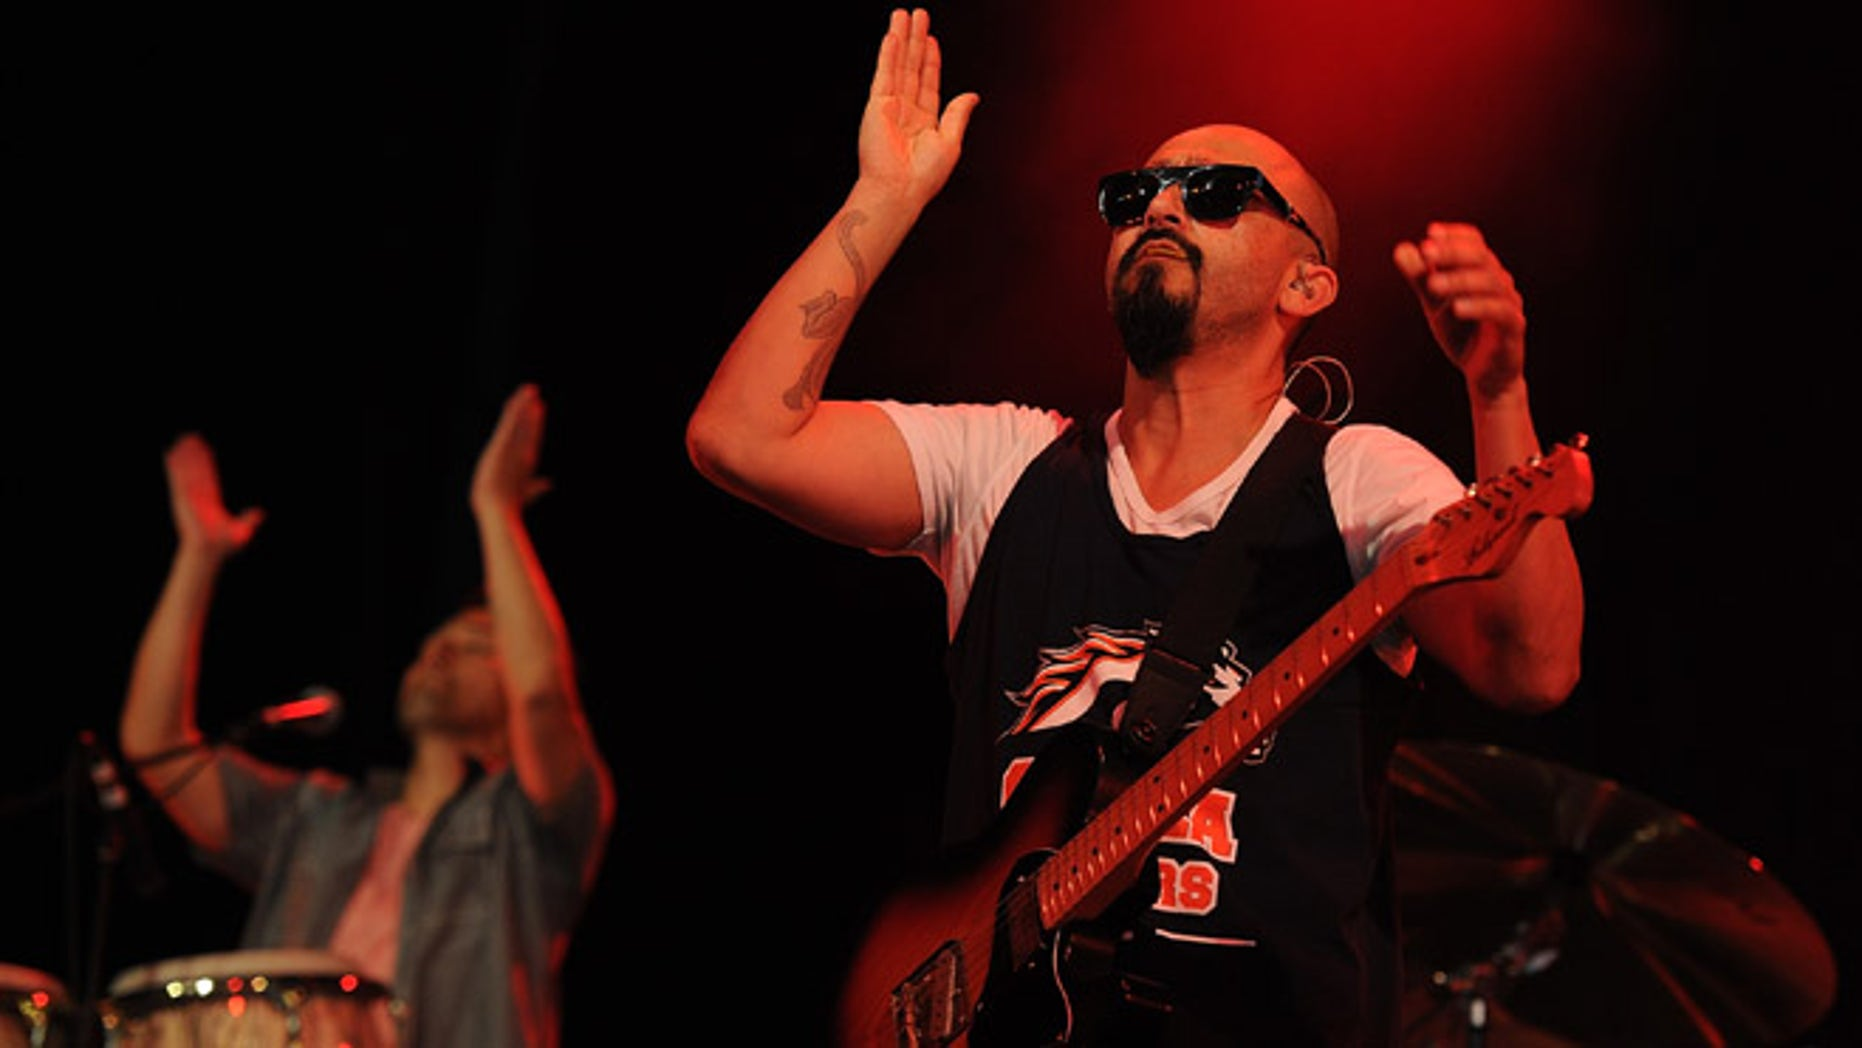 BYRON BAY, AUSTRALIA - APRIL 21:  Raul Pacheco of Ozomatli performs live for fans at the 2014 Byron Bay Bluesfest on April 21, 2014 in Byron Bay, Australia.  (Photo by Matt Roberts/Getty Images)